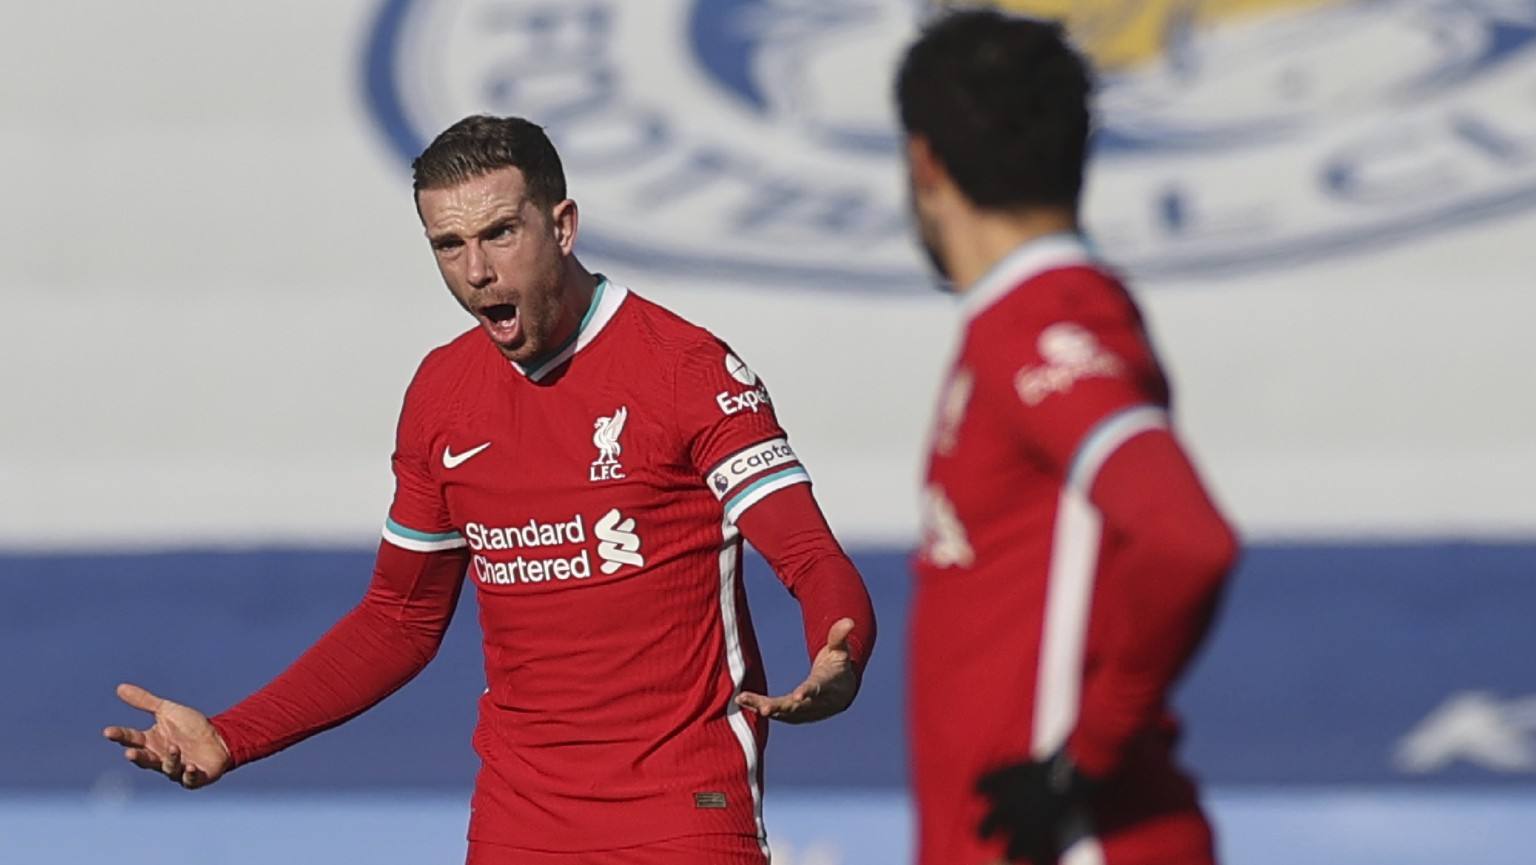 Liverpool's Jordan Henderson, left, shouts out during the English Premier League soccer match between Leicester City and Liverpool at the King Power Stadium in Leicester, England, Saturday, Feb. 13, 2021. (Carl Recine/Pool Photo via AP)